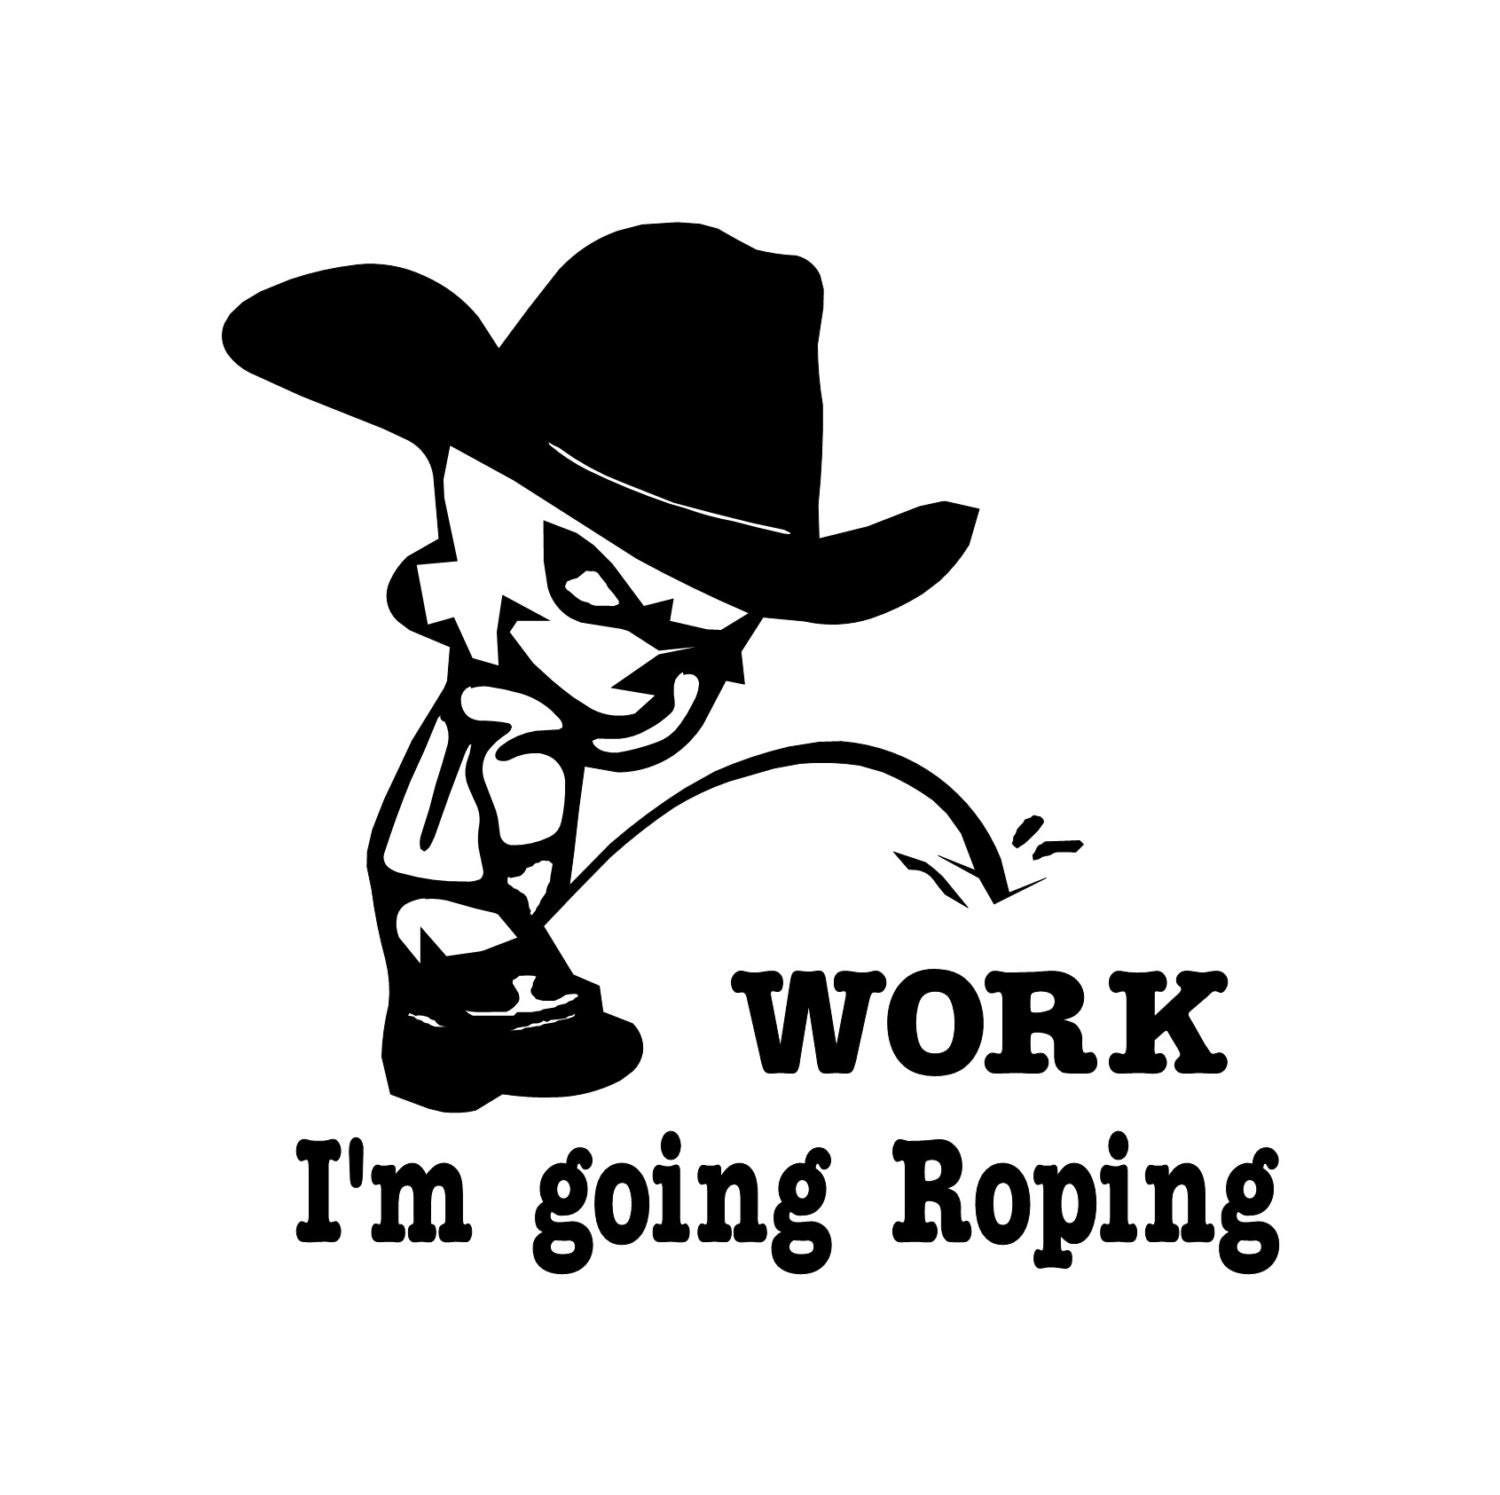 Cowboy Pee On Work Im Going ROPING Decal Vinyl Trailer - Cowboy custom vinyl decals for trucks